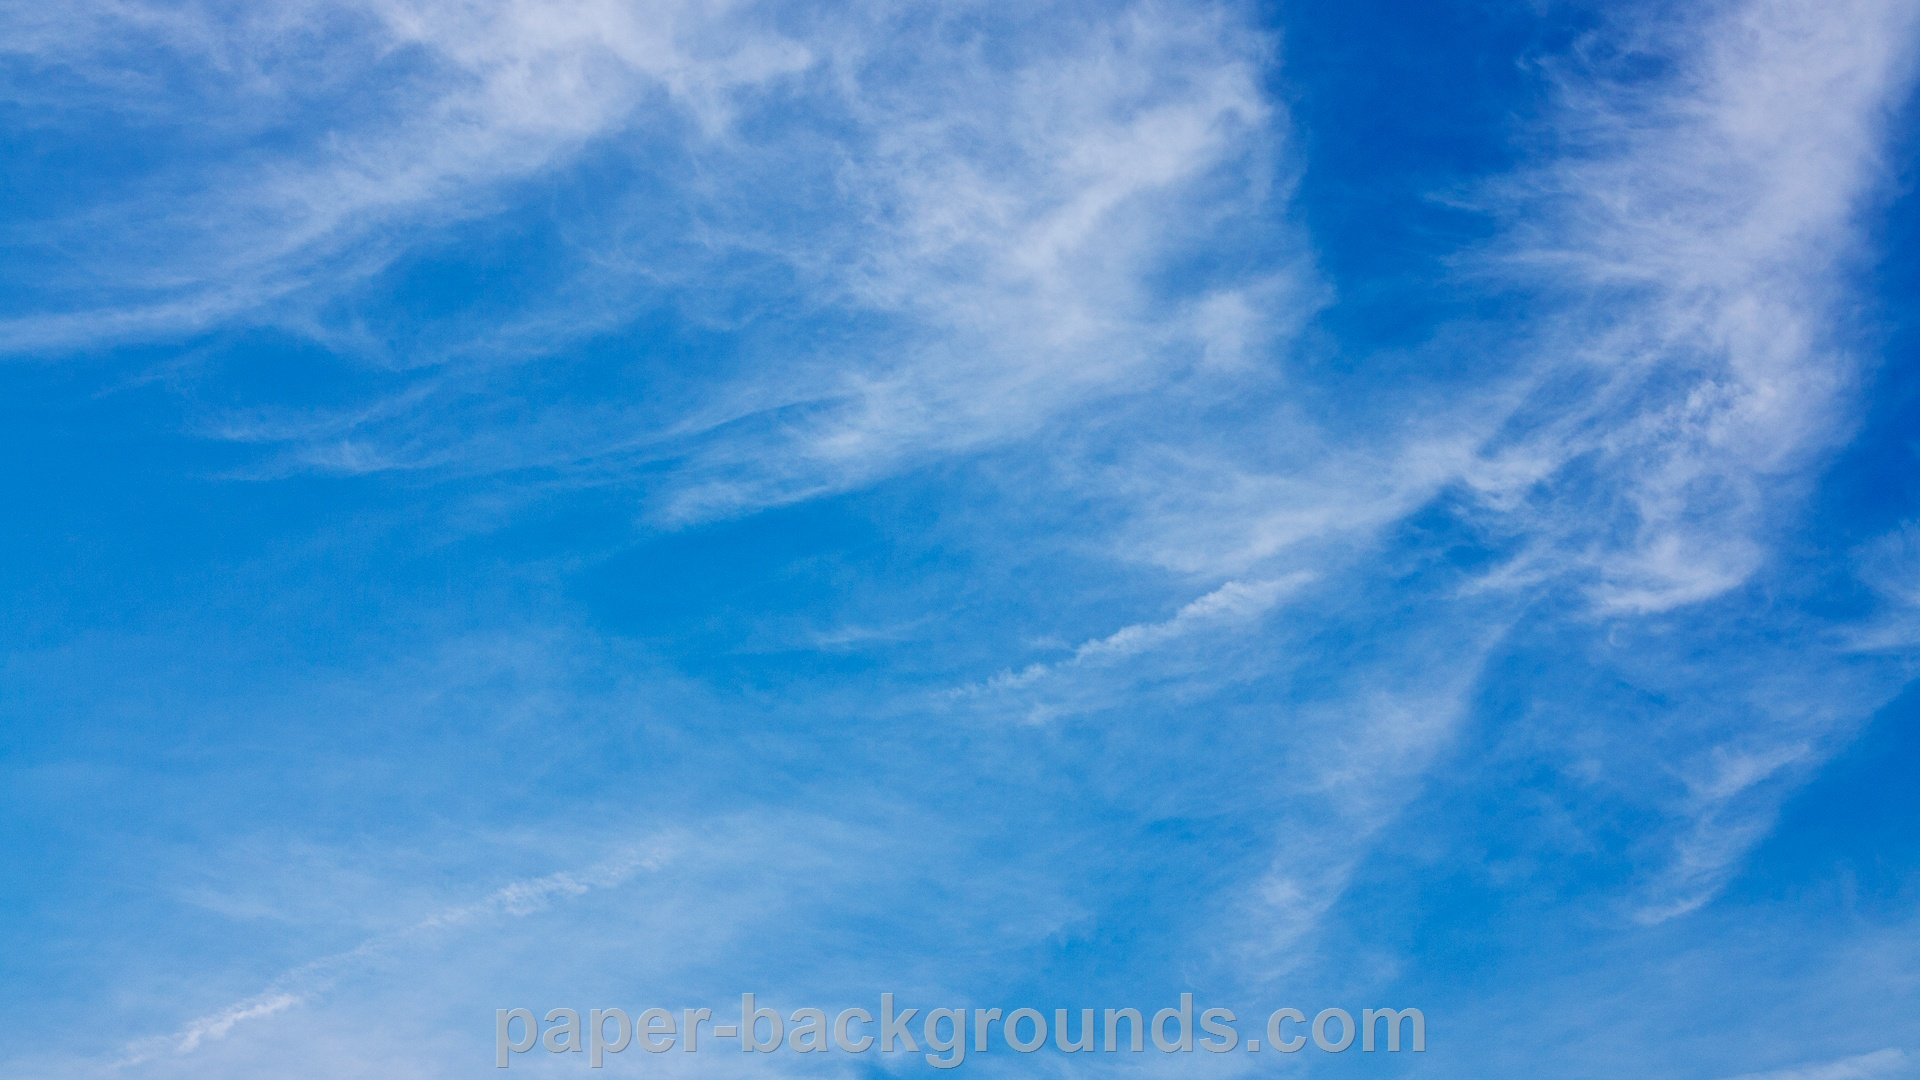 blue sky background hd Paper Backgrounds 1920x1080